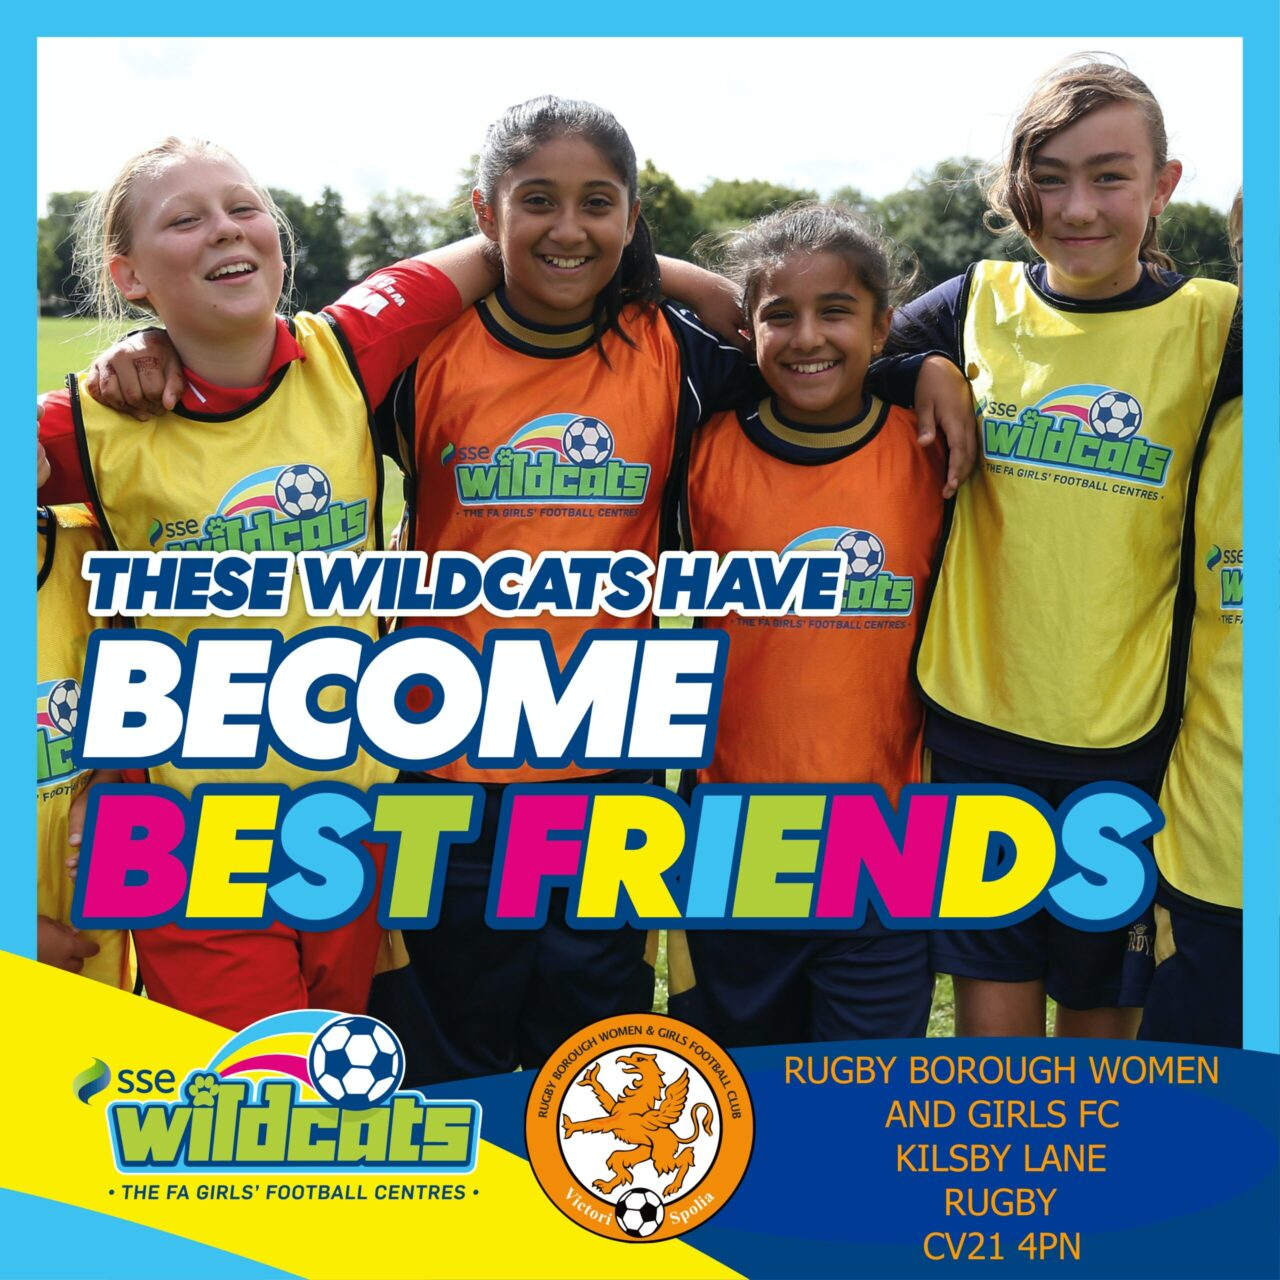 Wildcats Become Best Friends & Rugby Borough Women & Girls Promo post